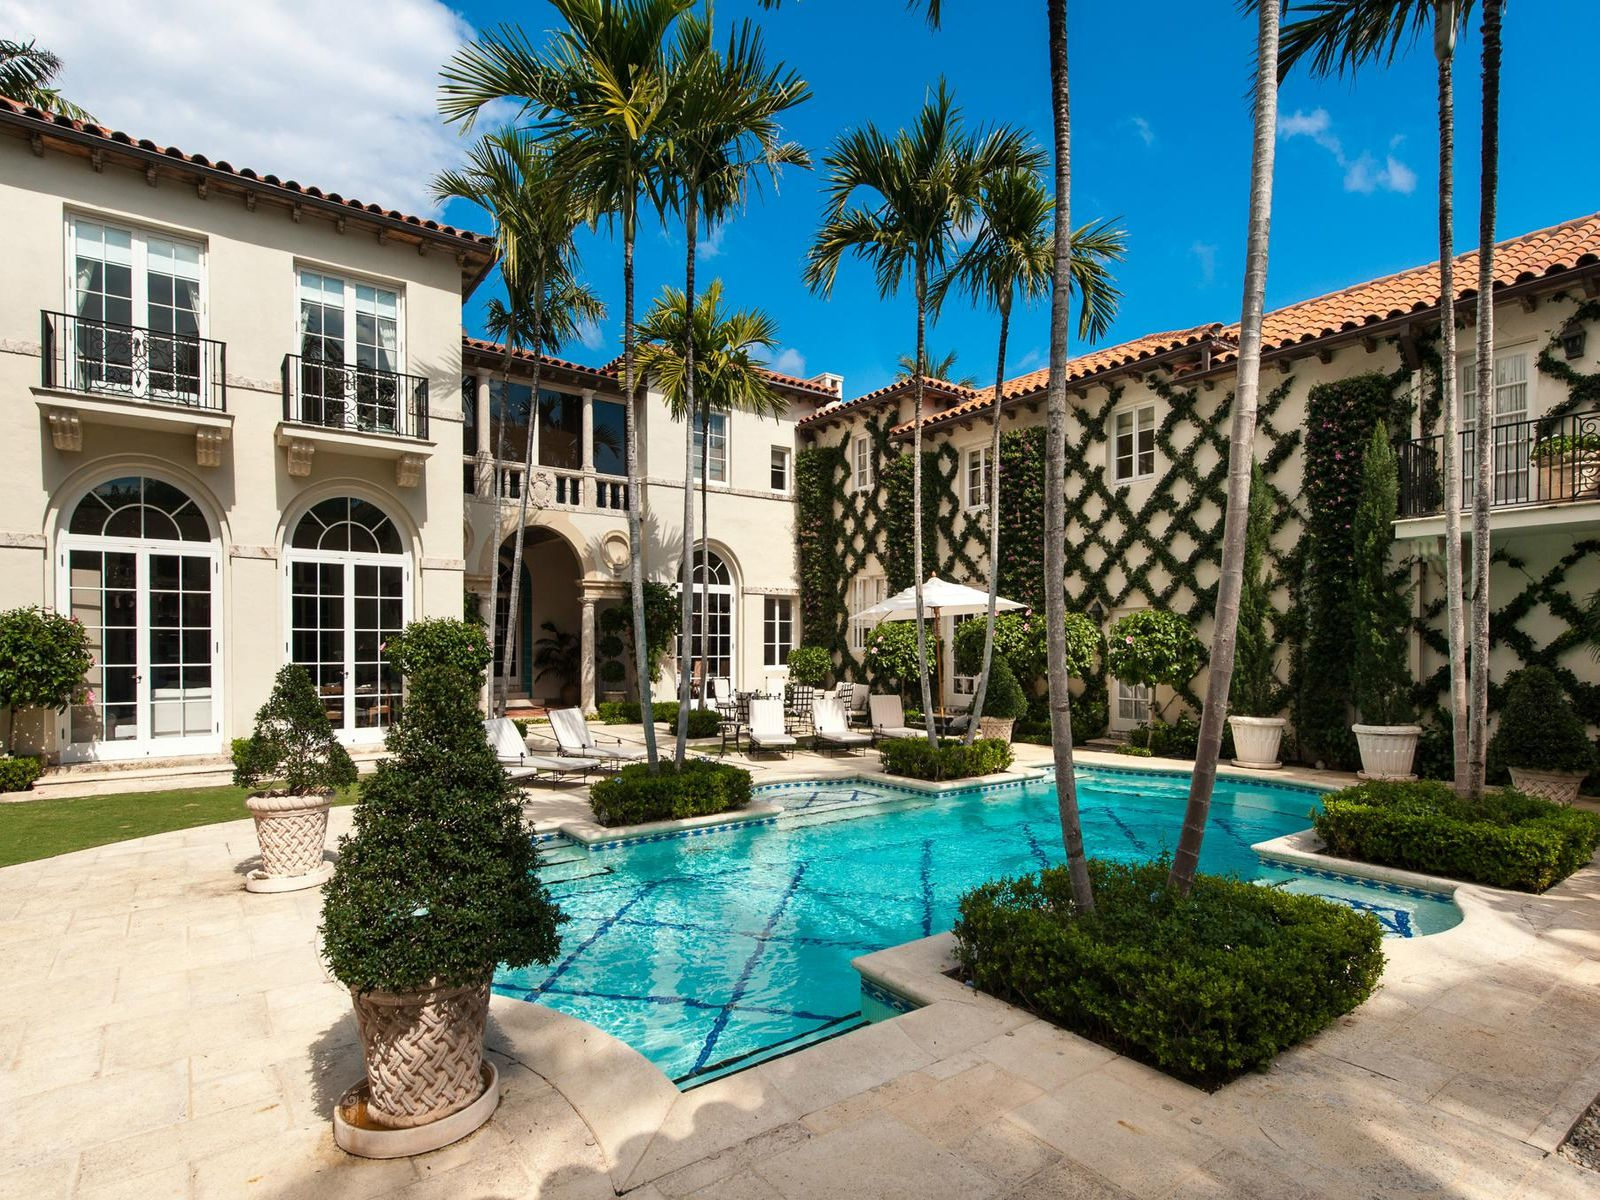 Exquisite Annual Rental, Palm Beach FL Single Family Home - Palm Beach Real Estate